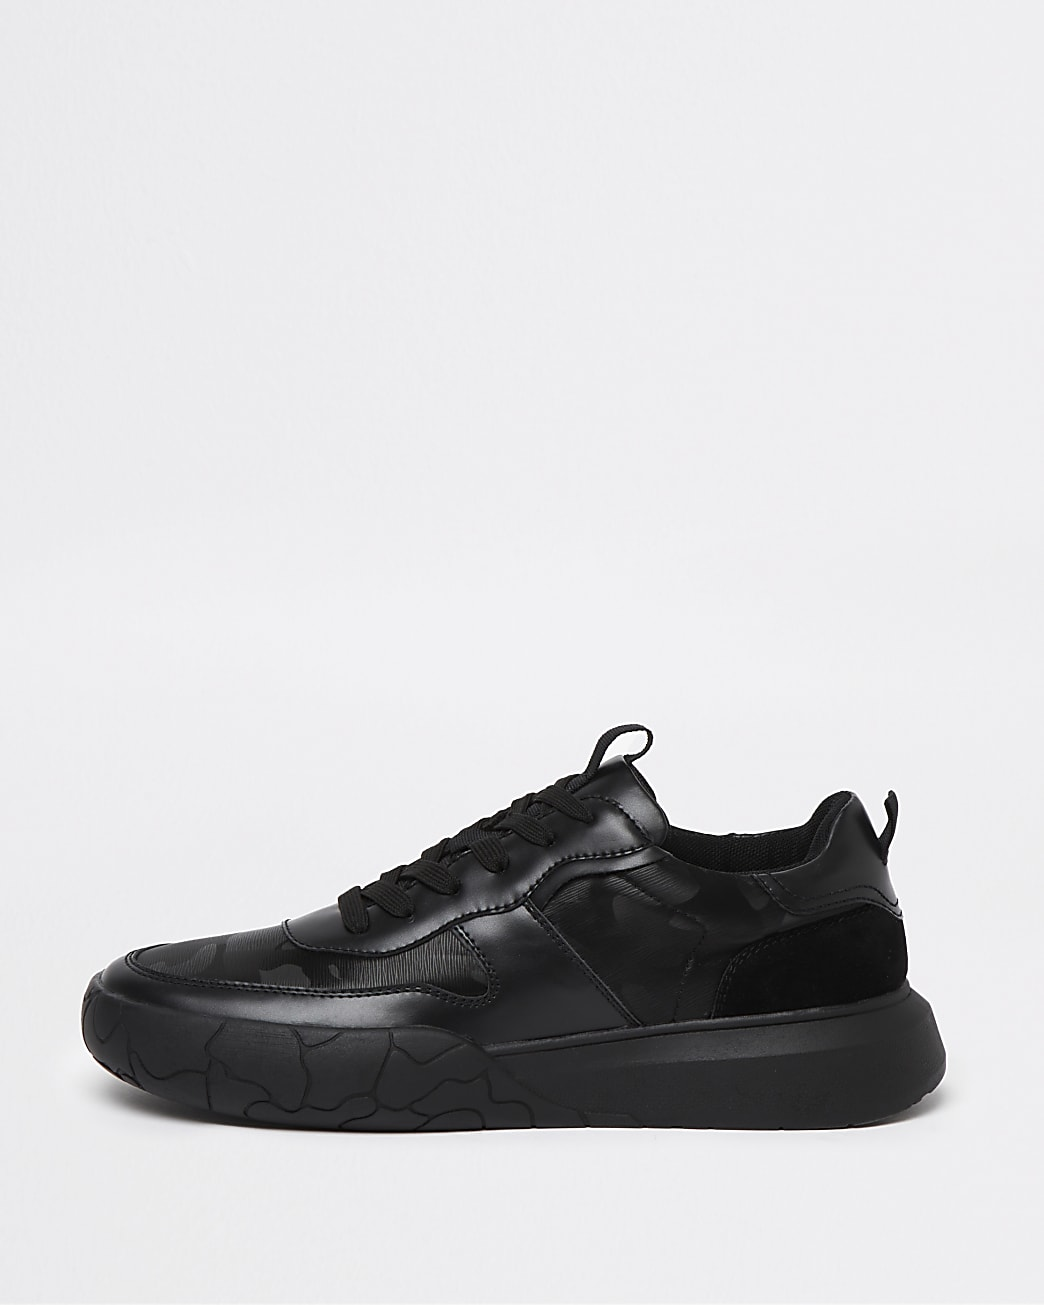 Black camo print lace up runner trainers